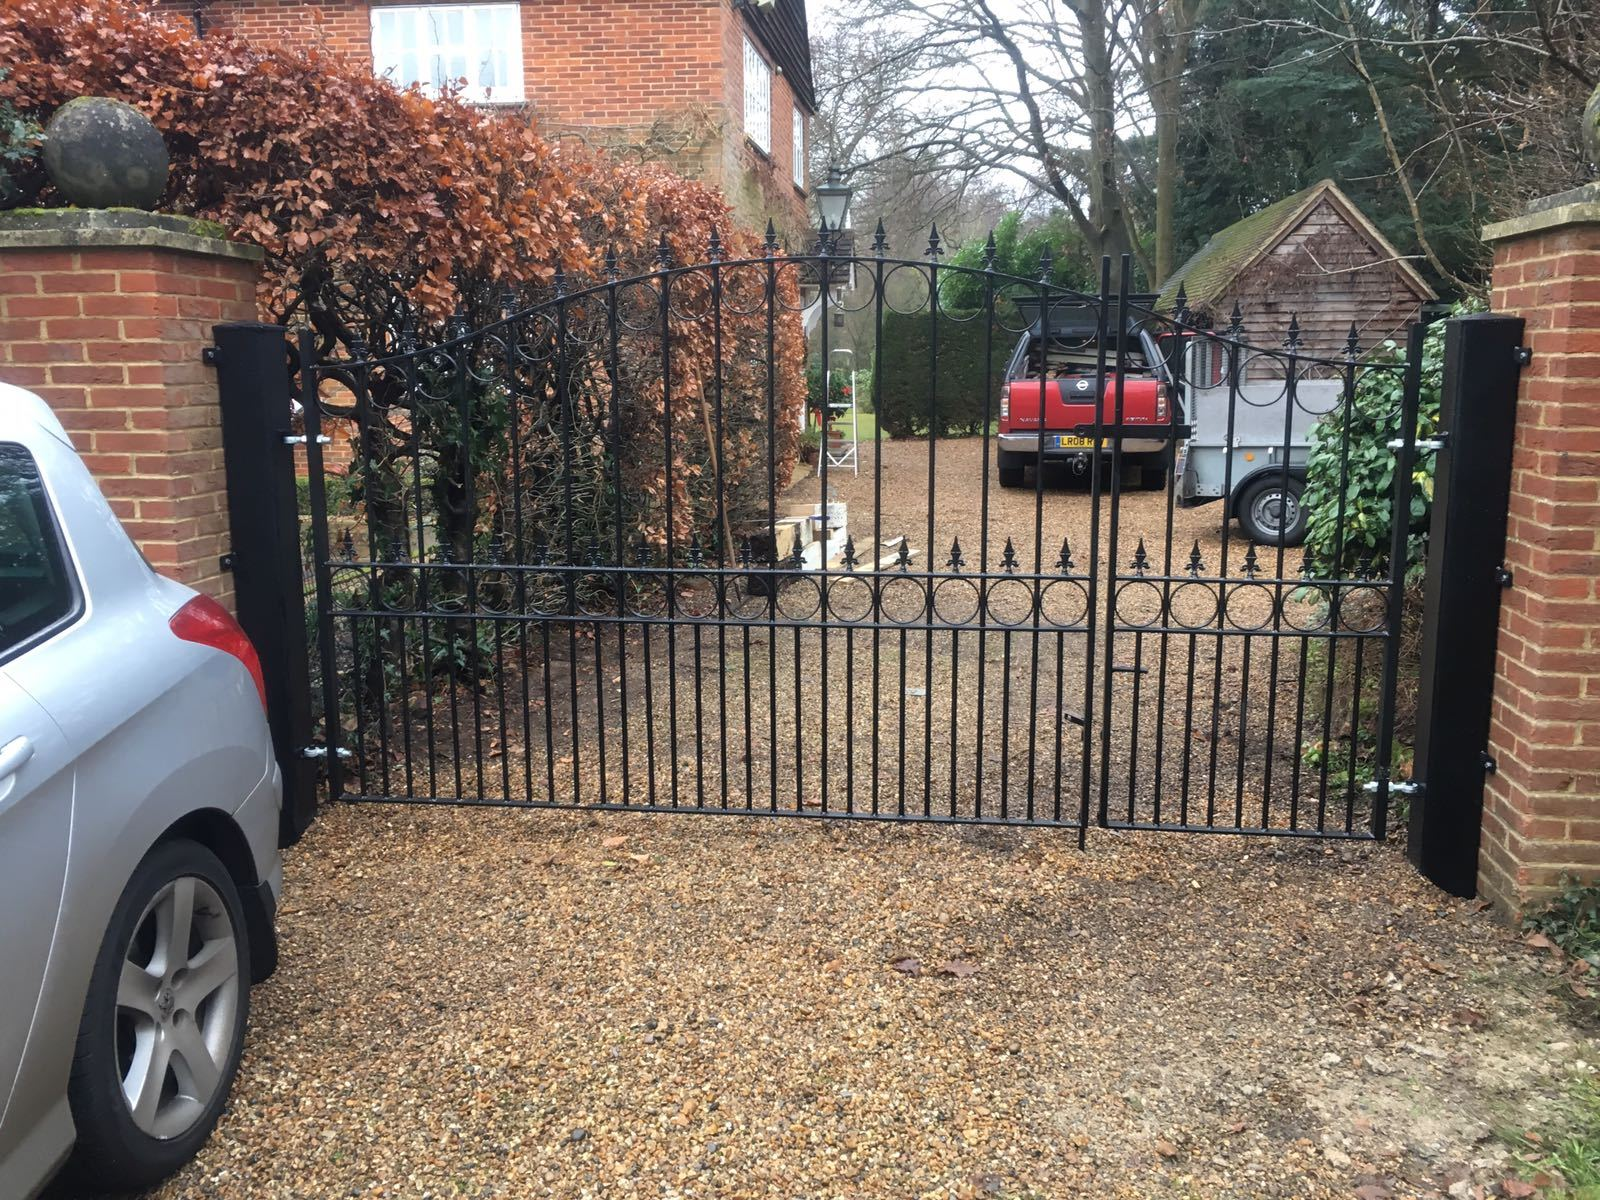 Royal Talisman wrought iron driveway gates fitted to brick pillars